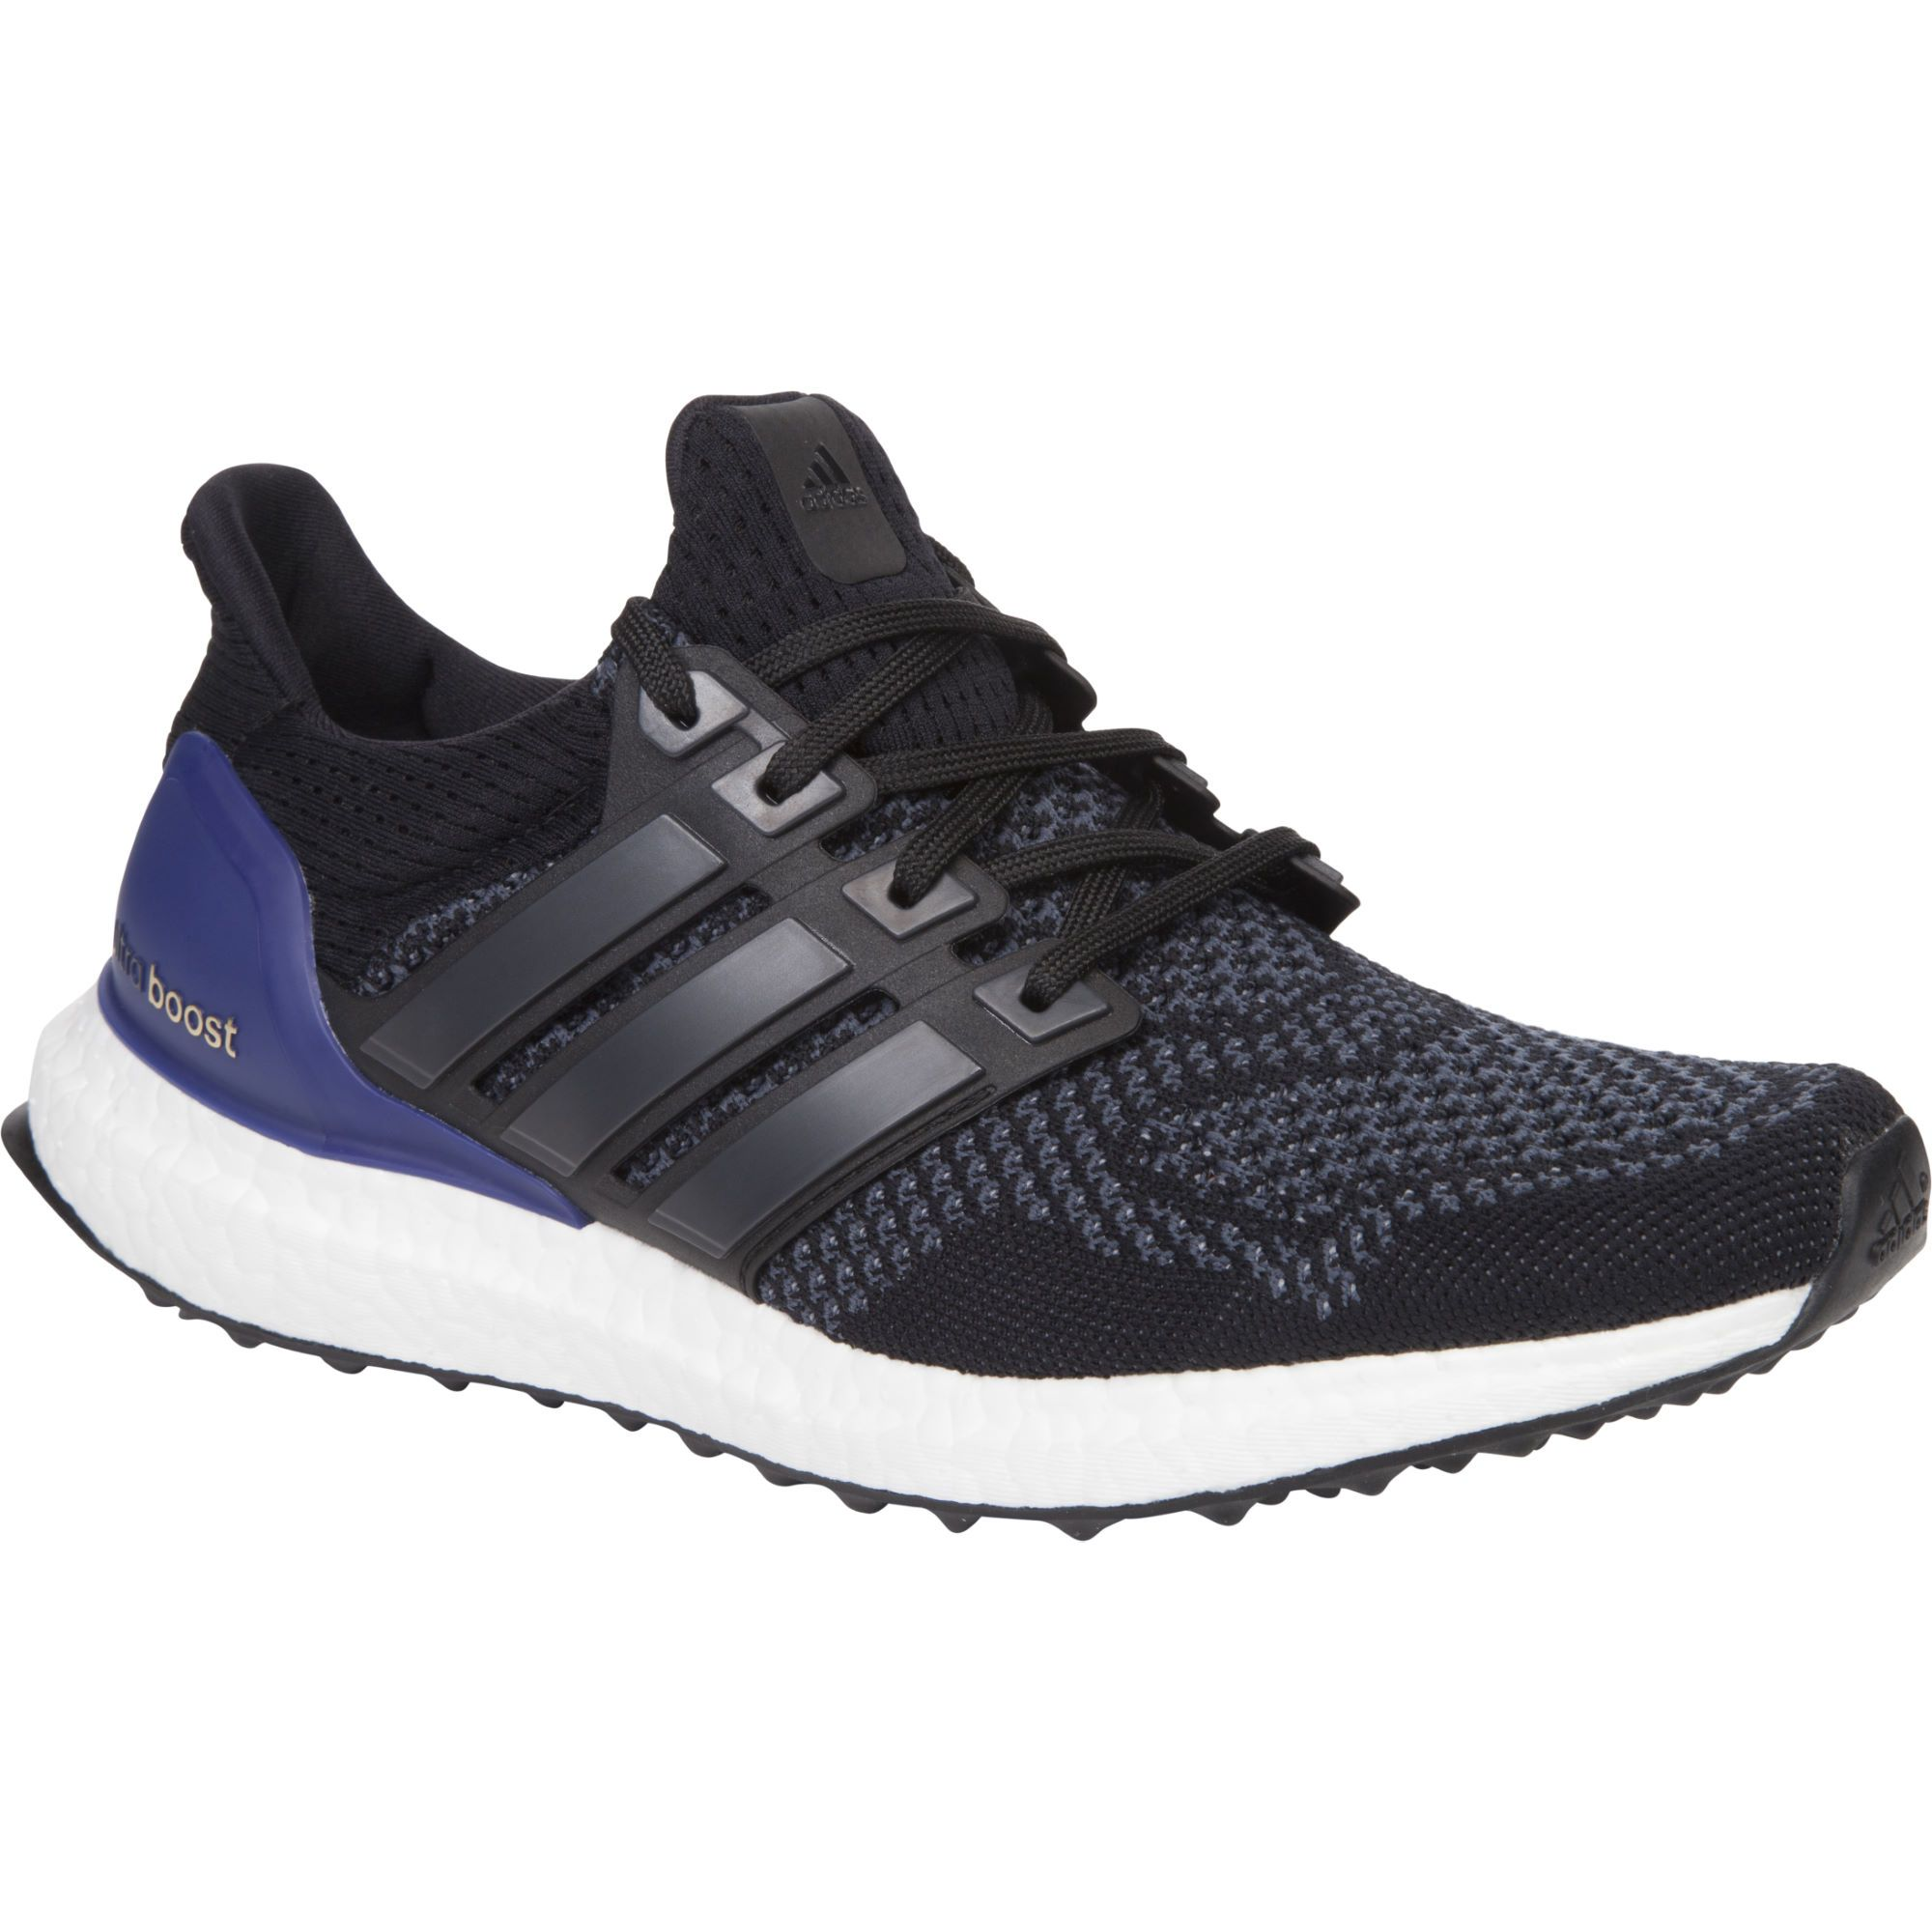 new concept 064e4 aa4d3 Wiggle | Adidas Ultra Boost Shoes - SS15 | Cushion Running ...